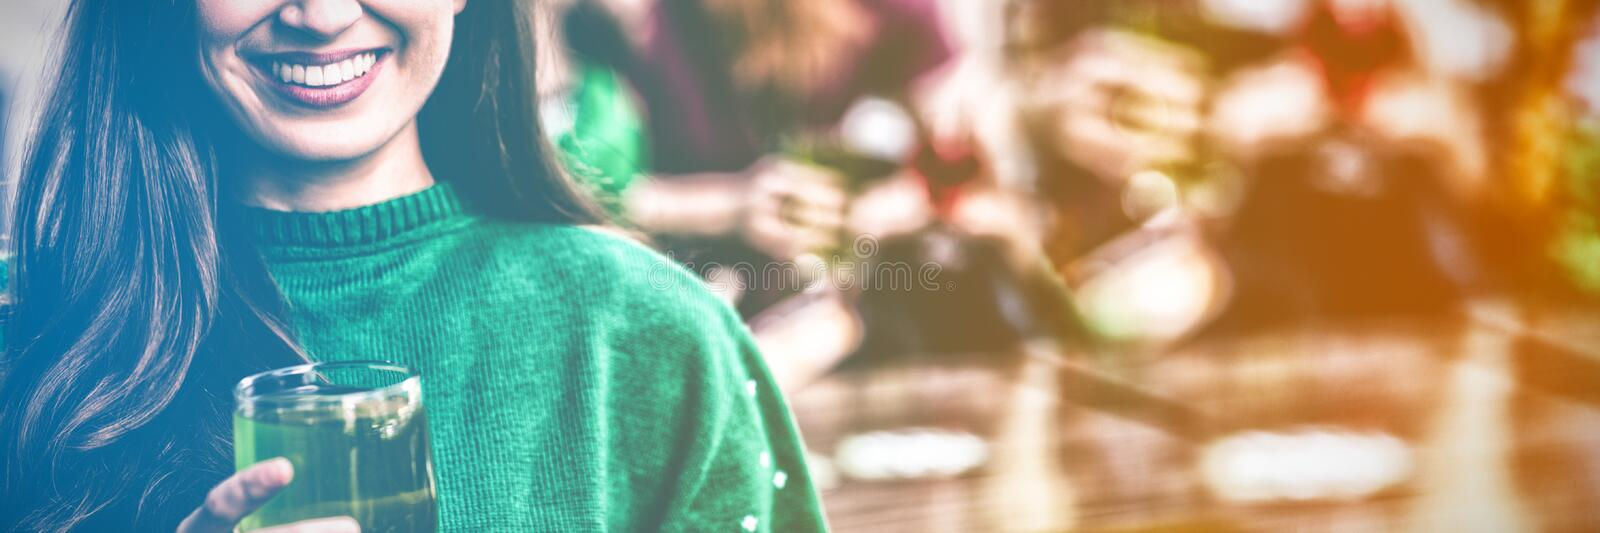 Portrait of cheerful woman celebrating St Patricks day stock images